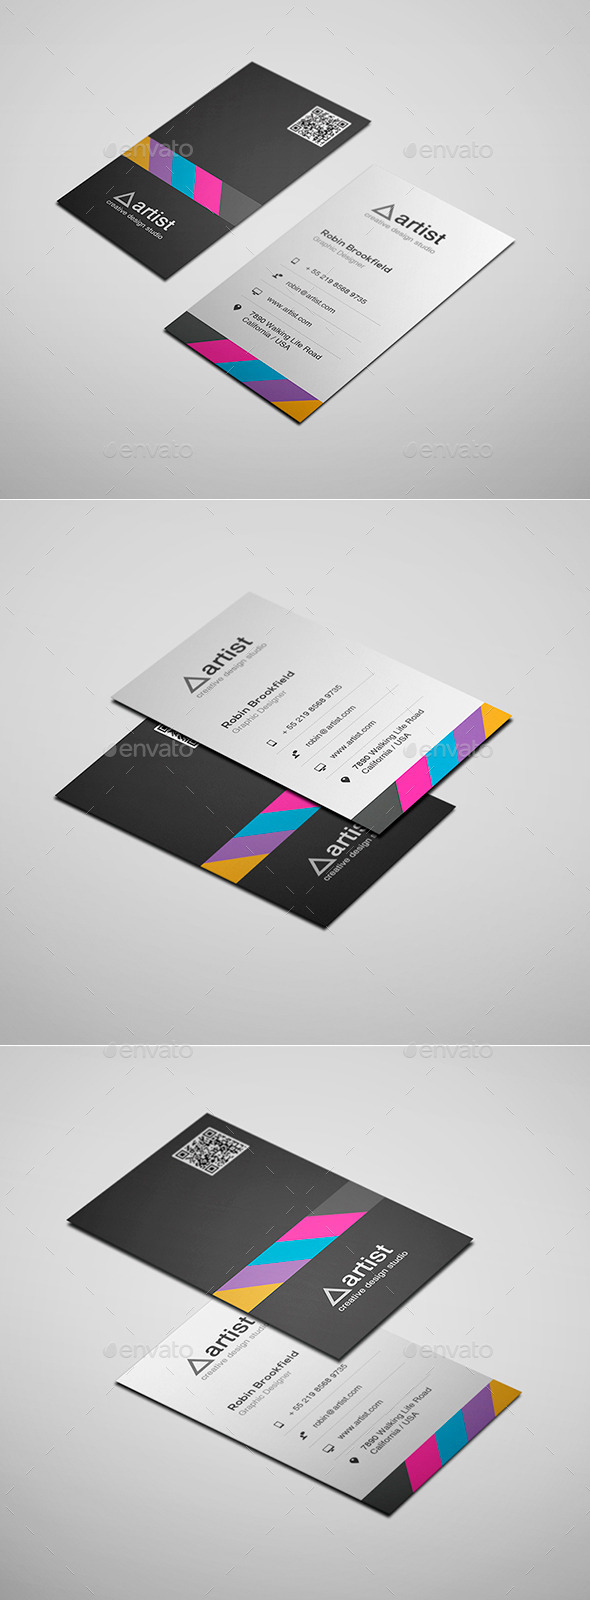 GraphicRiver Business Card Vol 25 11628358